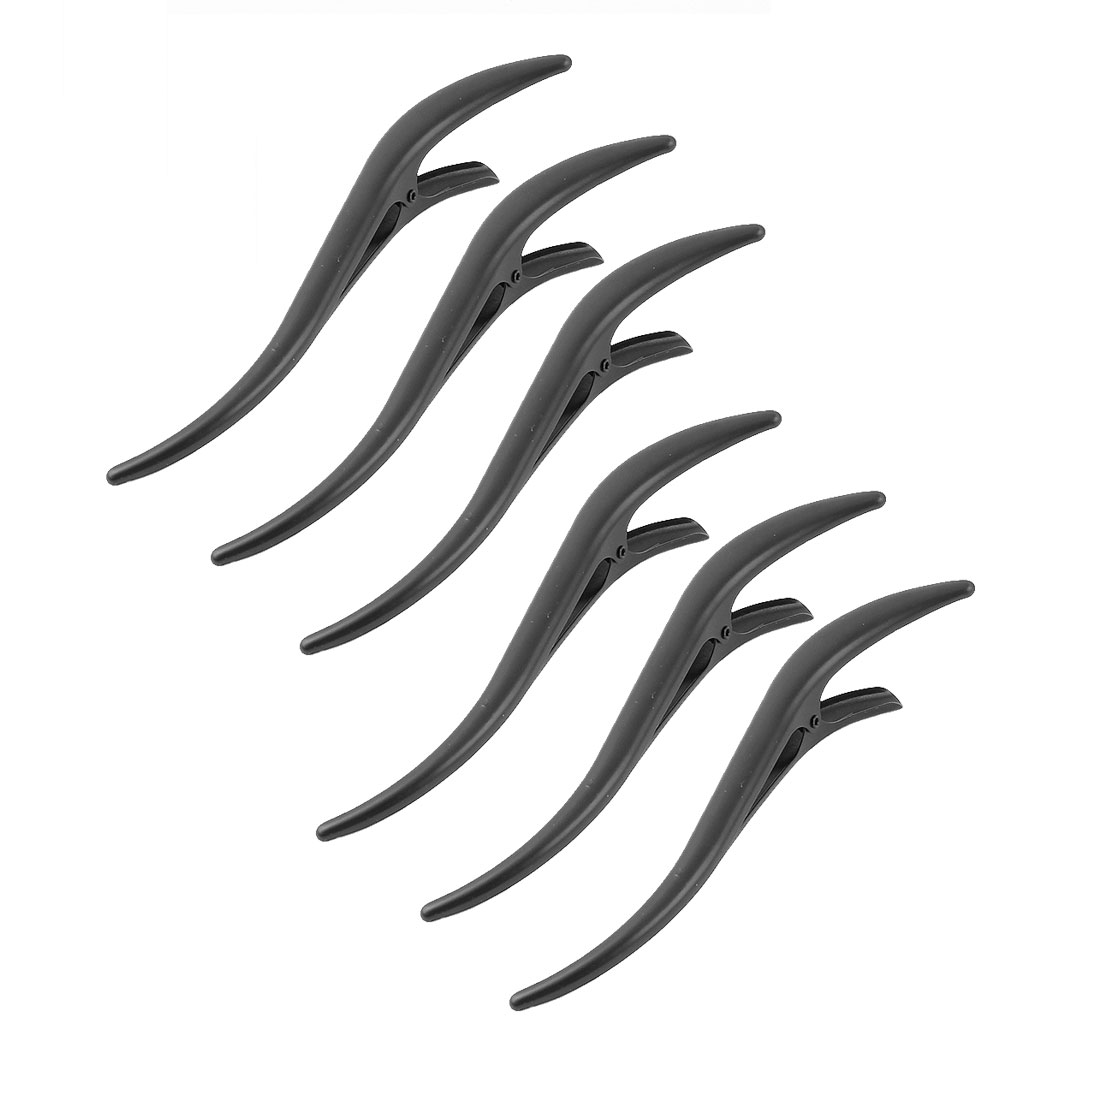 Lady Metal Single Wave Shaped Hairstyle Alligator Hair Clip Barrette Black 6Pcs